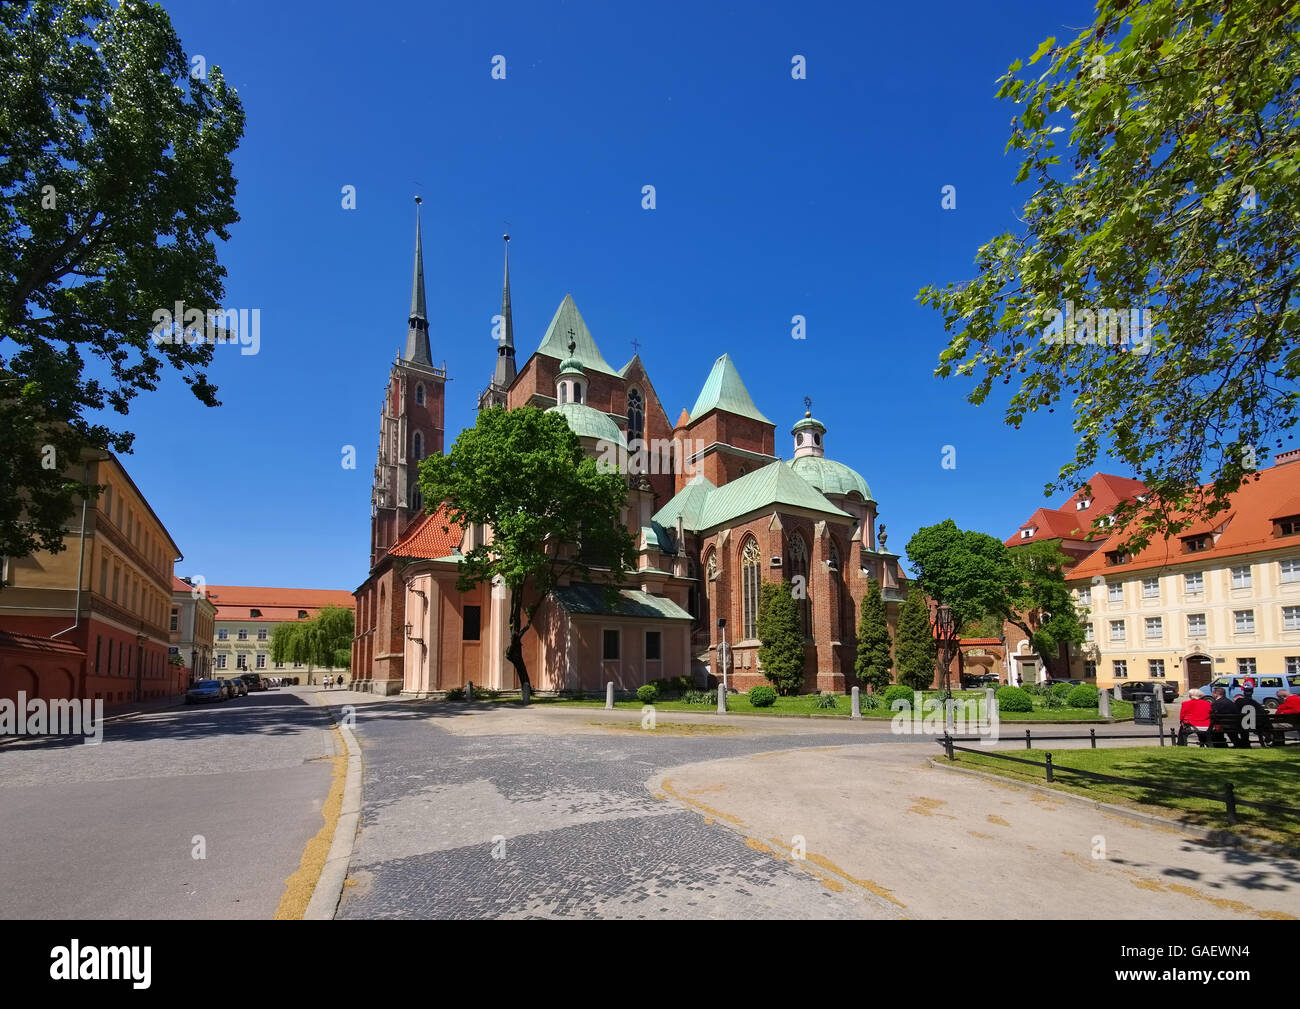 Breslauer Dom in der Stadt - Breslau the cathedral in the city Stock Photo